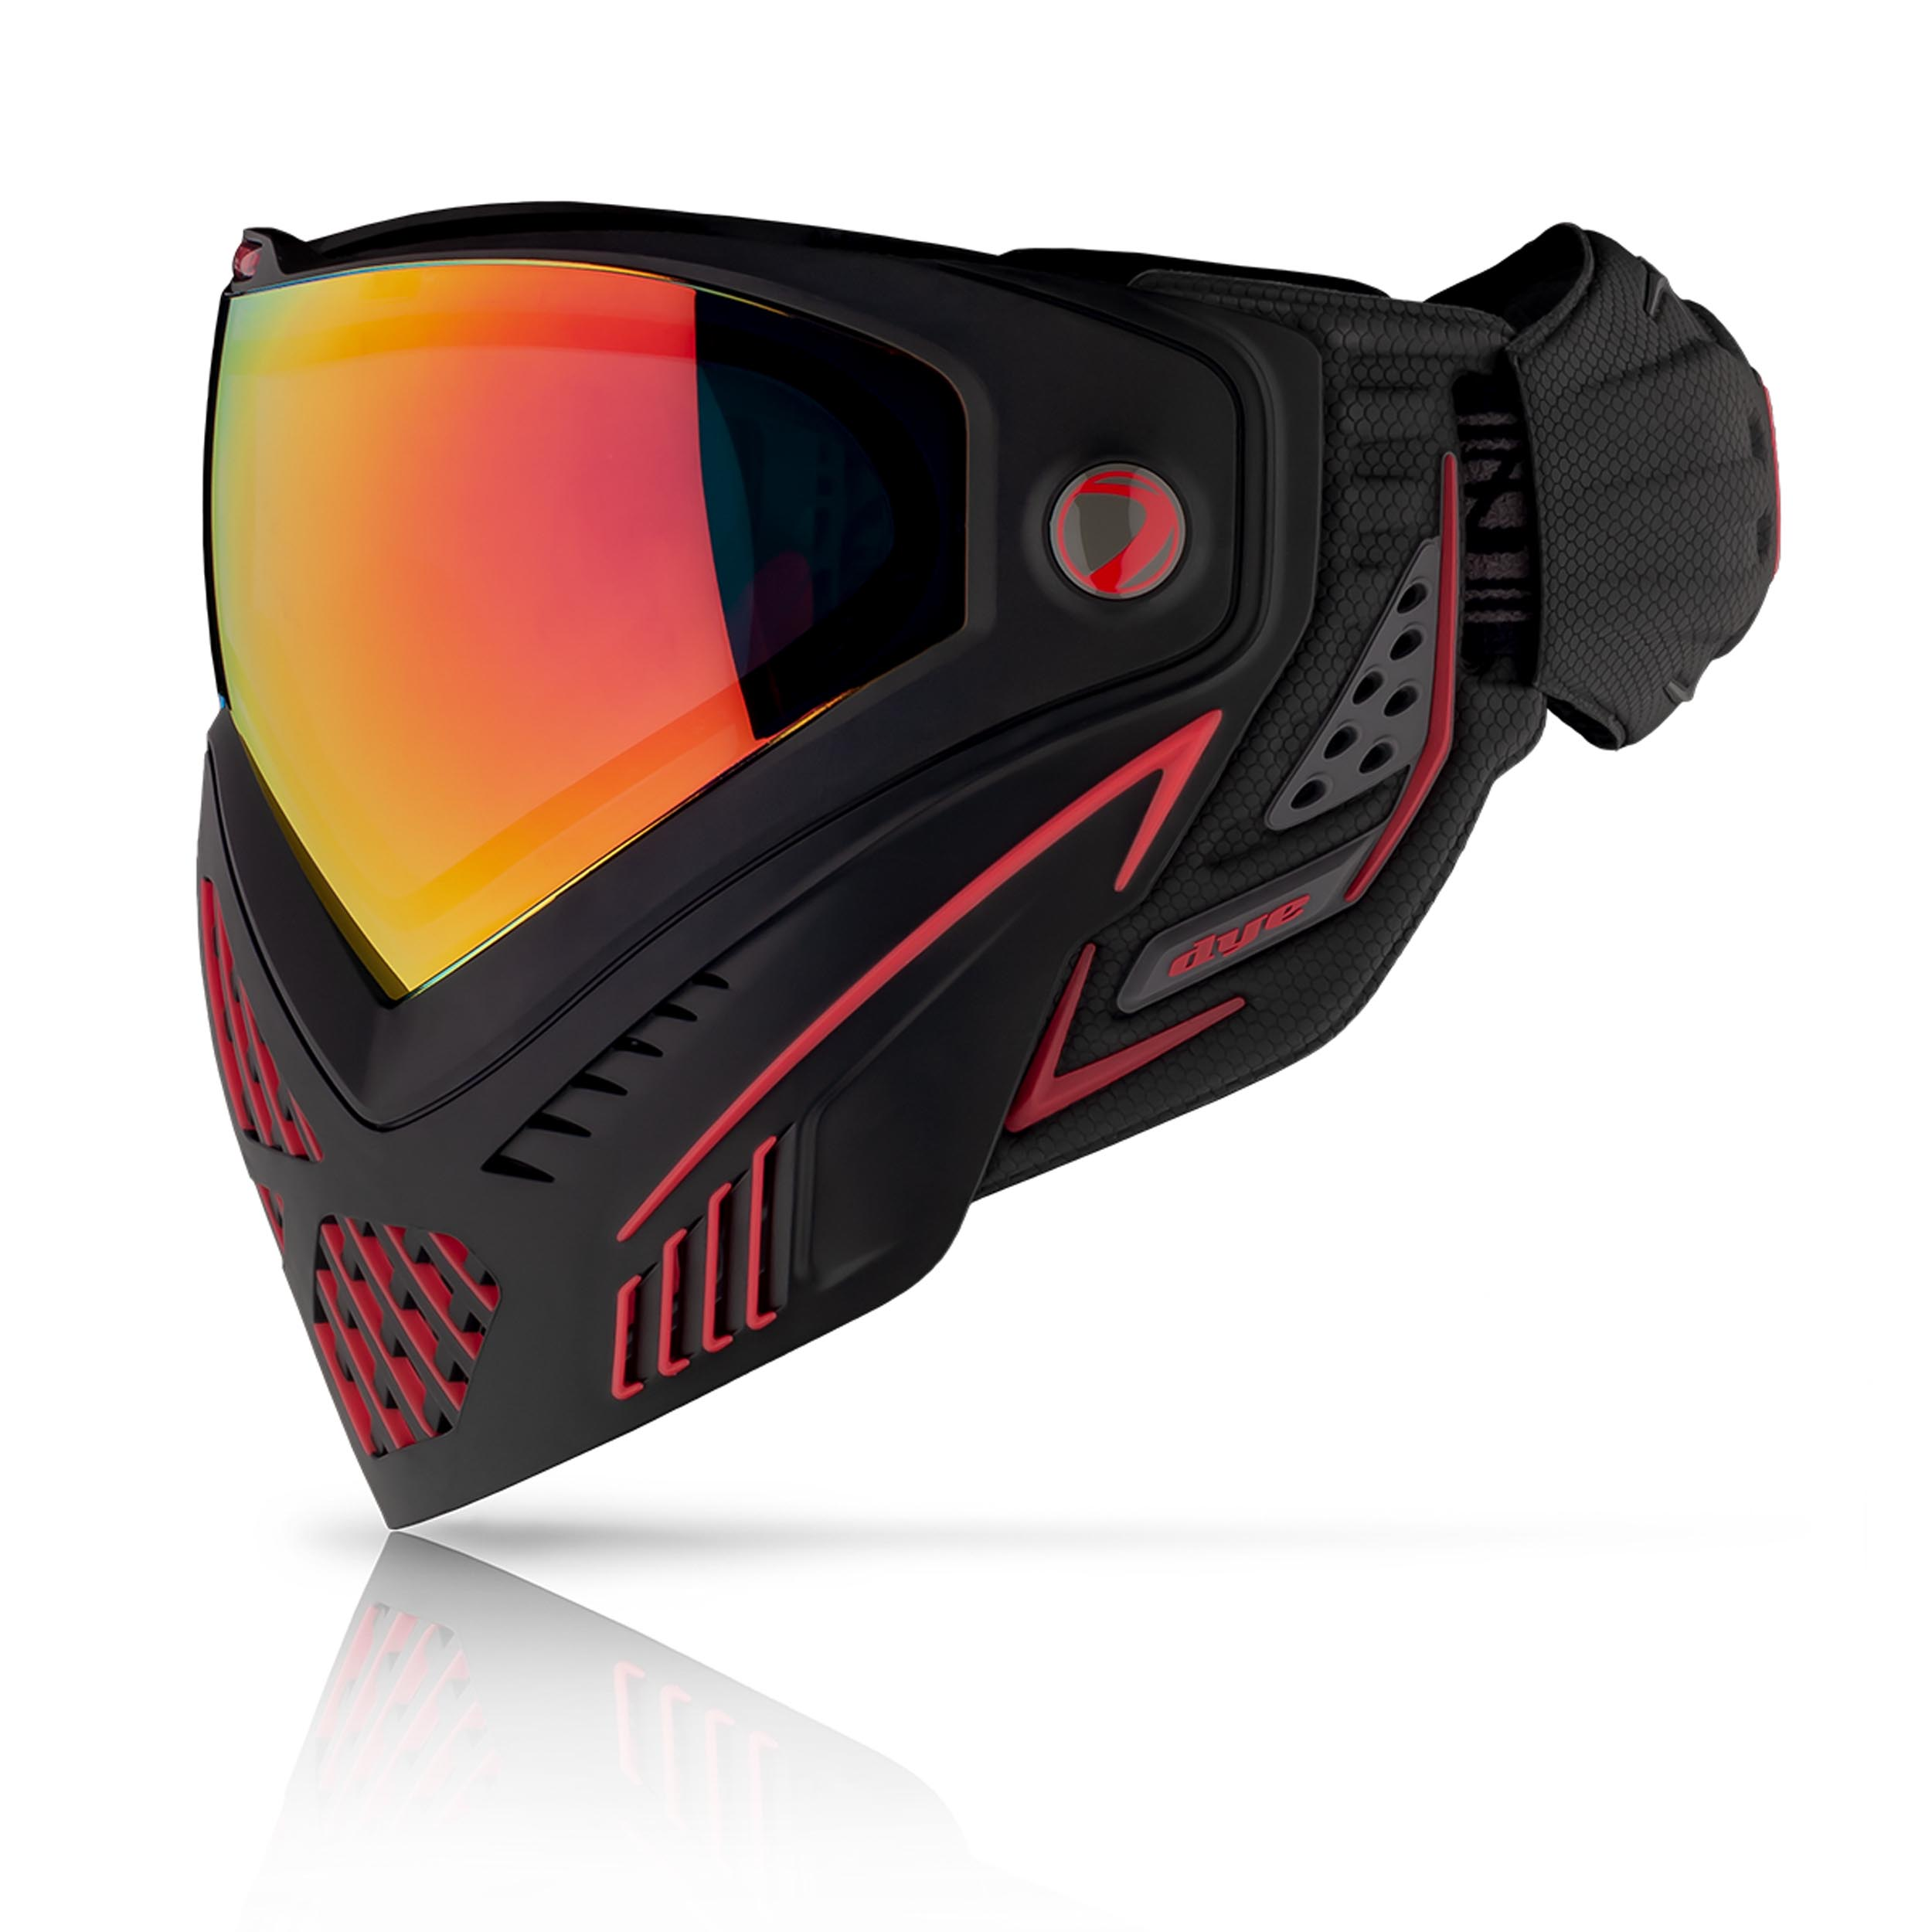 MAS471-2 Dye I5 thermal Fire Black Red 2.0 - MAS471